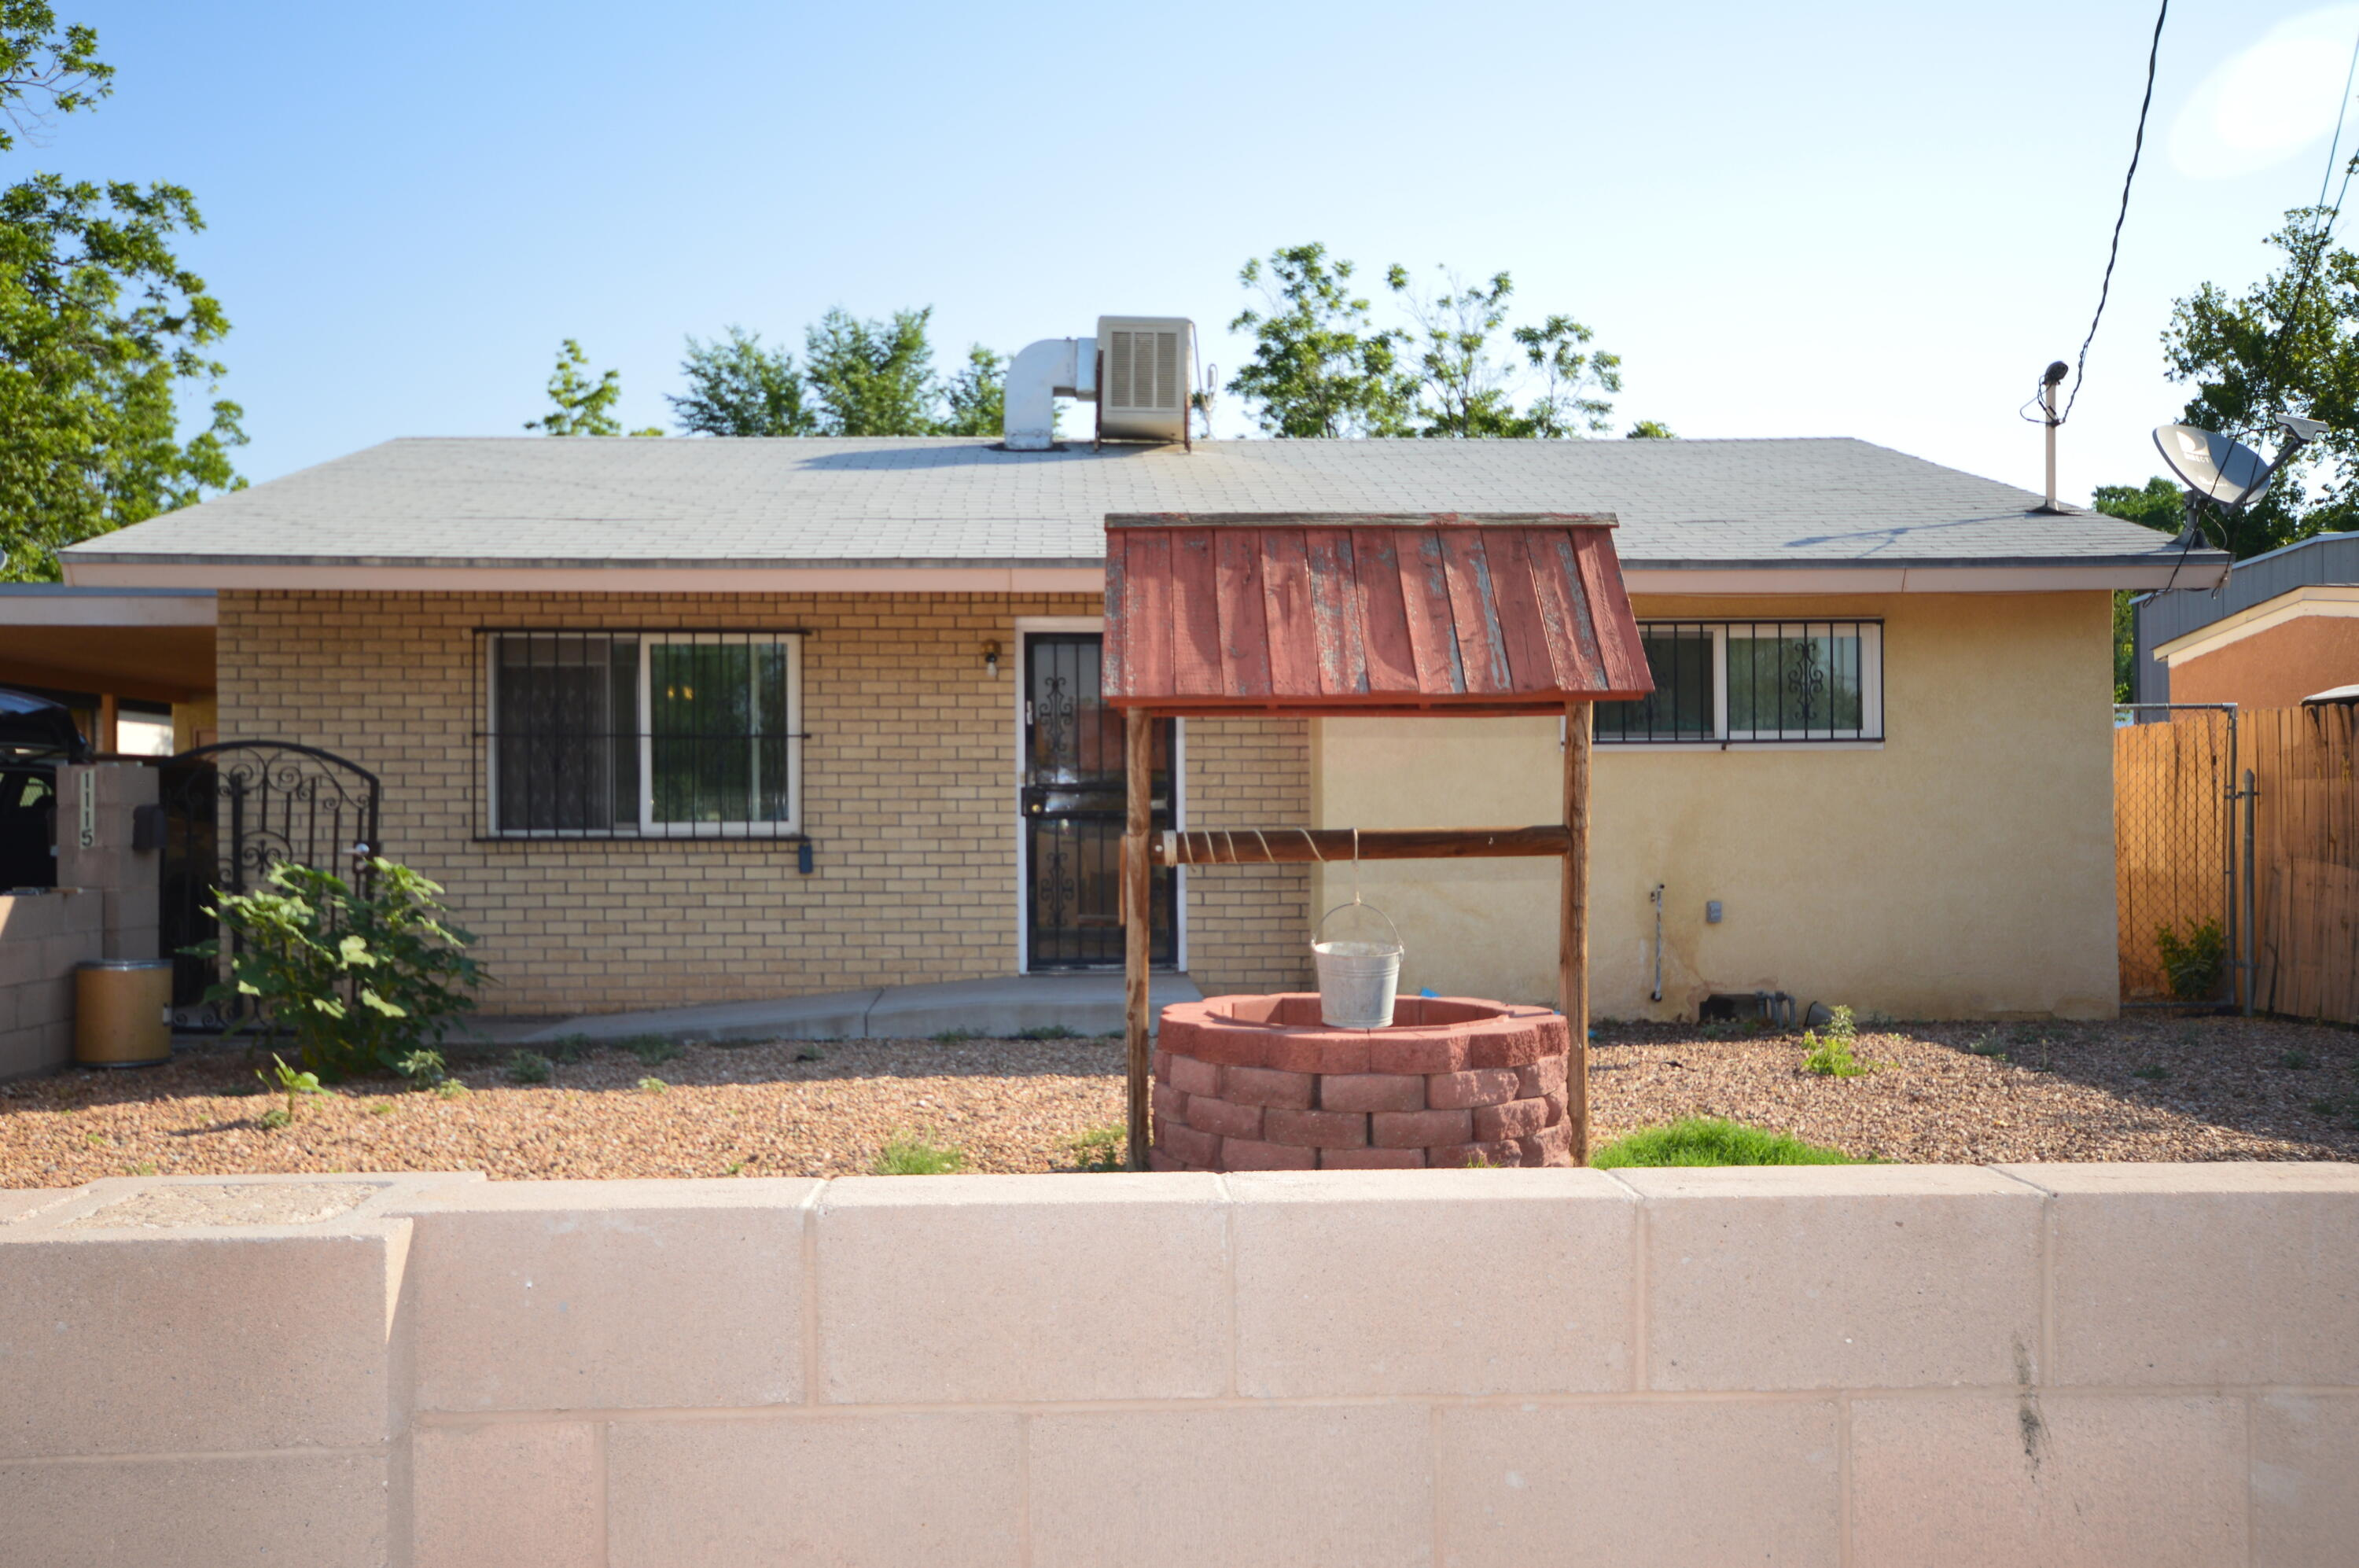 Located on a quiet street, this north valley home has a large living room, dining room and kitchen complete with gas stove, dishwasher and refrigerator. Two spacious bedrooms: master with large walkin closet and second bedroom with builtin desk. Carpet in living/dining room and bedrooms has laminate flooring underneath. Covered carport and storage room. Backyard is highlighted by large covered patio and storage shed.